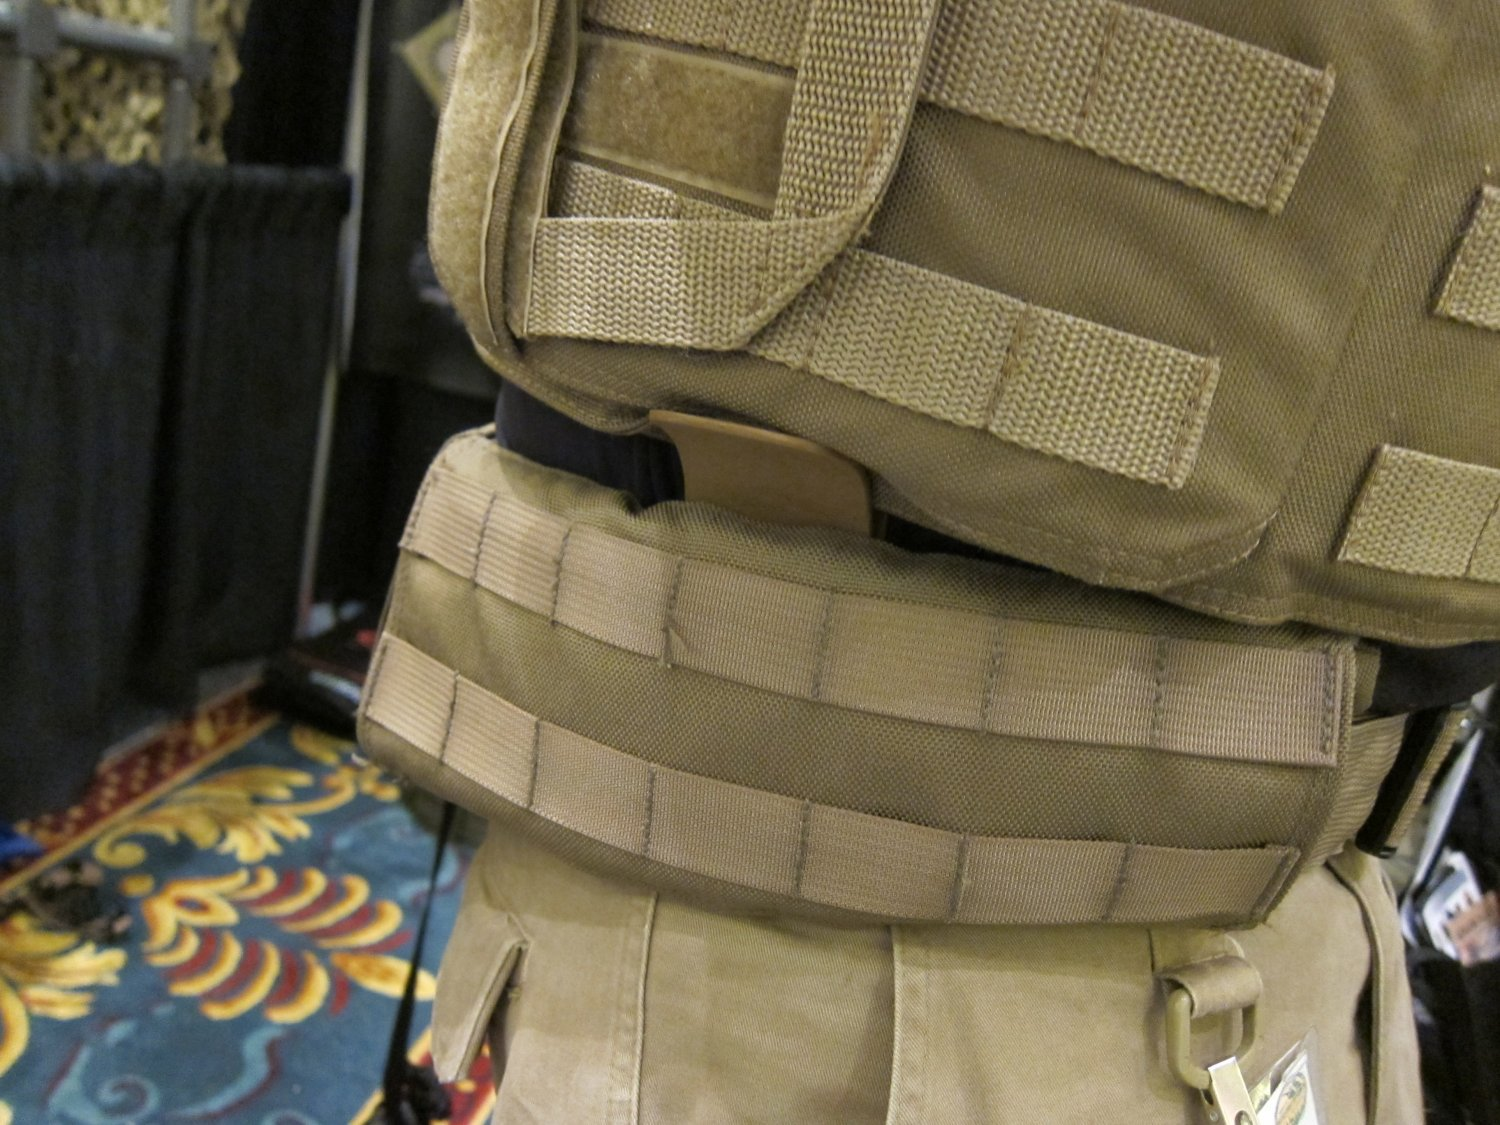 P2 Systems P2Sys Centurion Armour Integra Belt Battle Belt with Integral Armor Waist Supports Plastic Stays at SHOT Show 2011 6 <!  :en  >Hardpoint Equipment Tactical Armor Carriers (formerly Personal Protective Systems, or P2 Systems): Best Tactical Body Armor Plate Carriers on the Planet? DR Looks at the Latest Hard Point Hard Armor Plate Carriers, Battle Belt, MOLLE Backpack System, and Passive Ventilation Channels/Removable Padding System at SHOT Show 2011 (Photos and Video!) <!  :  >